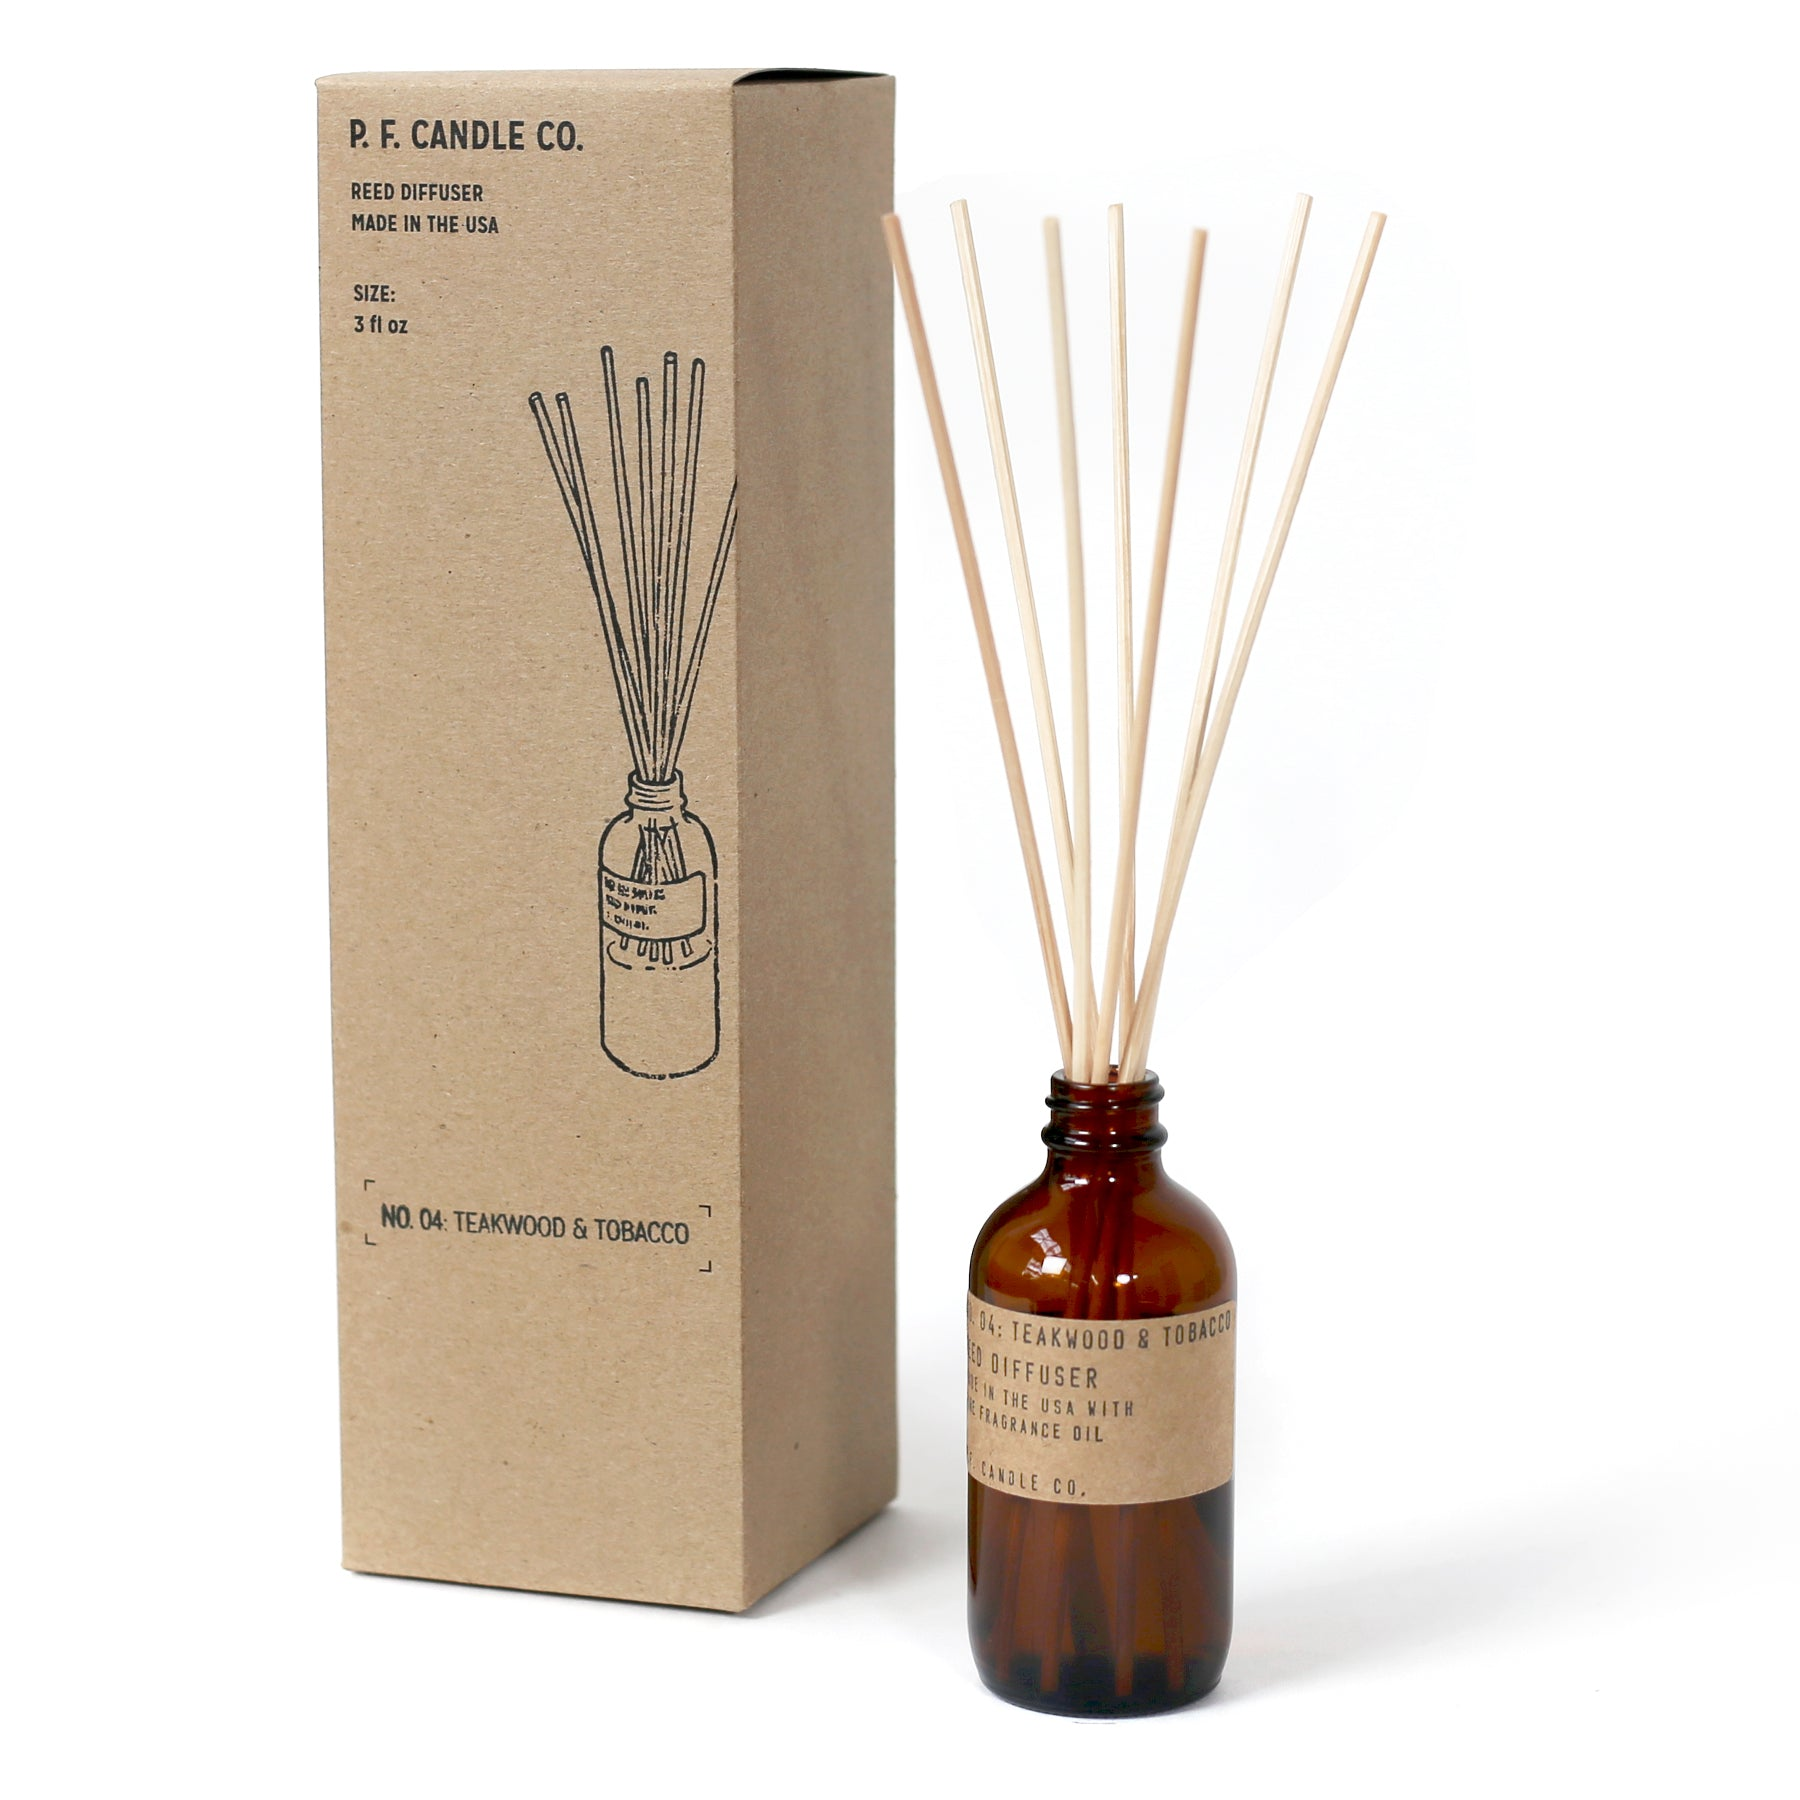 P.F. Candle Co Reed Diffuser Teakwood & Tobacco